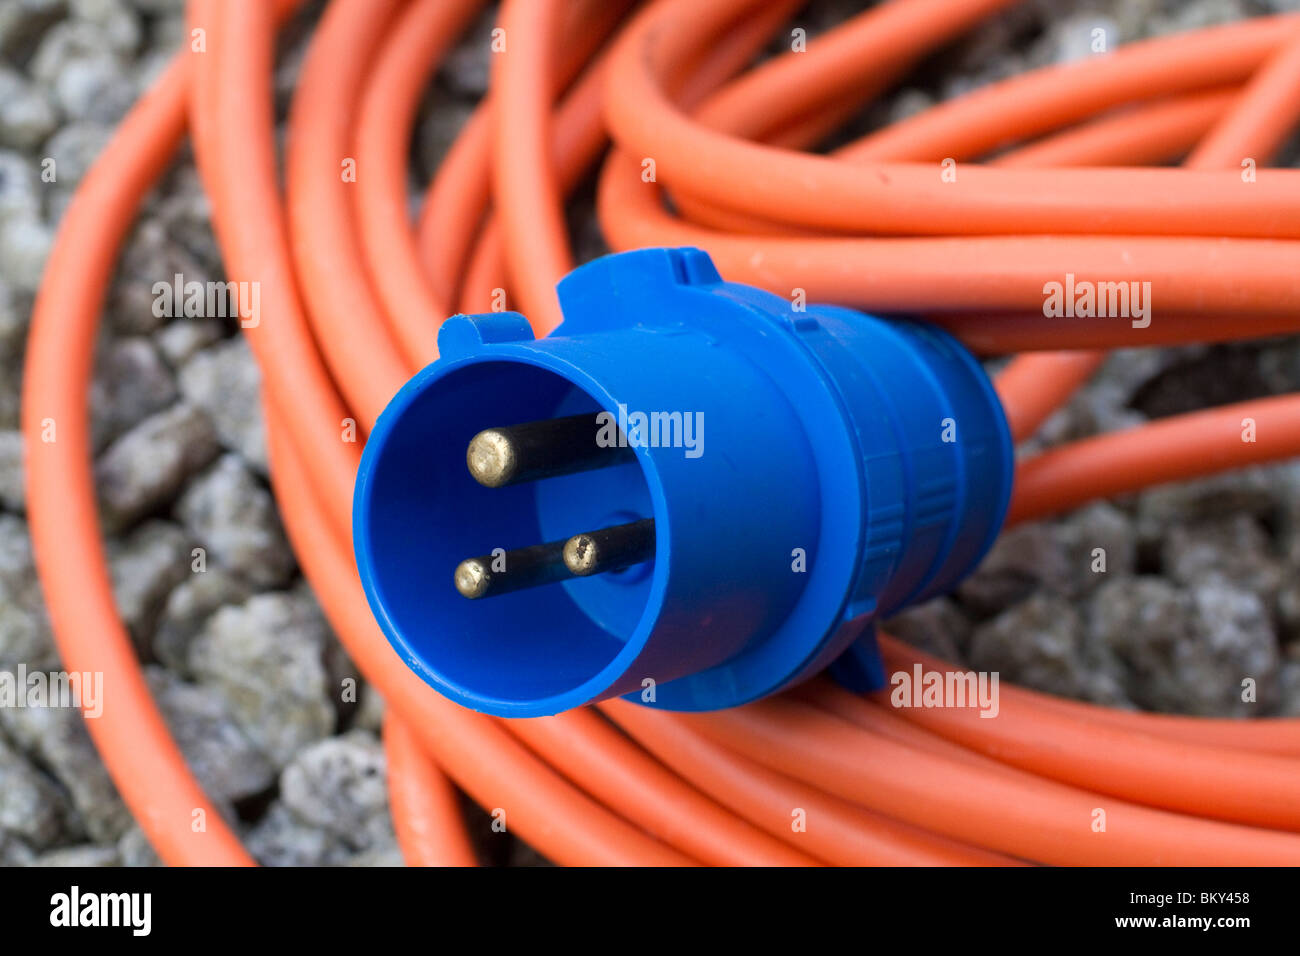 Electric plug and wire for a motorcaravan - Stock Image